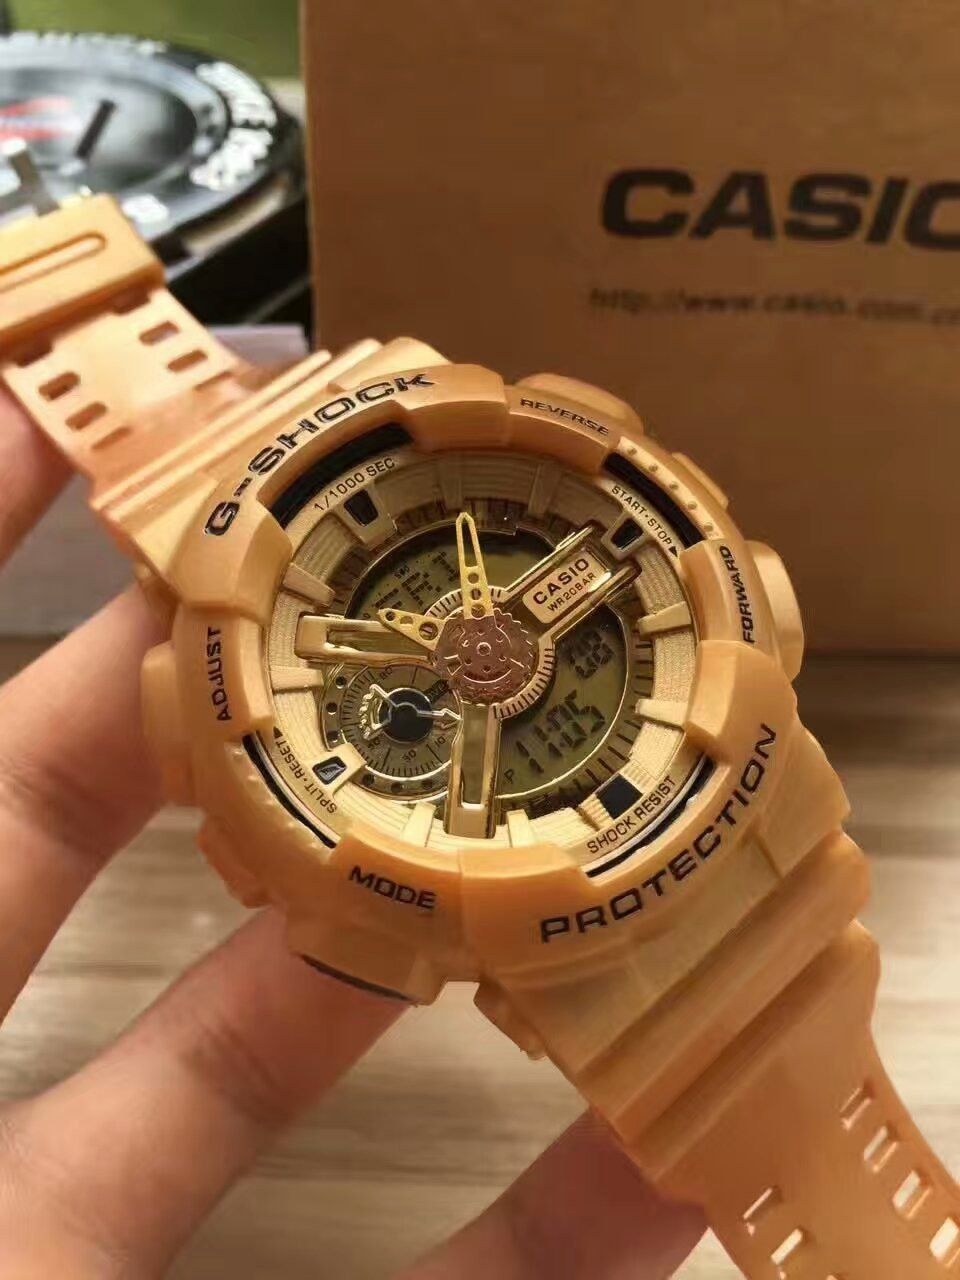 check out Assorted Casio G-... at http://www.benzinoosales.com/products/assorted-casio-g-shock-watches?utm_campaign=social_autopilot&utm_source=pin&utm_medium=pin + 10% OFF nd #FREESHIPPING !!      #designer #shopping #rolex #aesthetic #jewelry #cloth